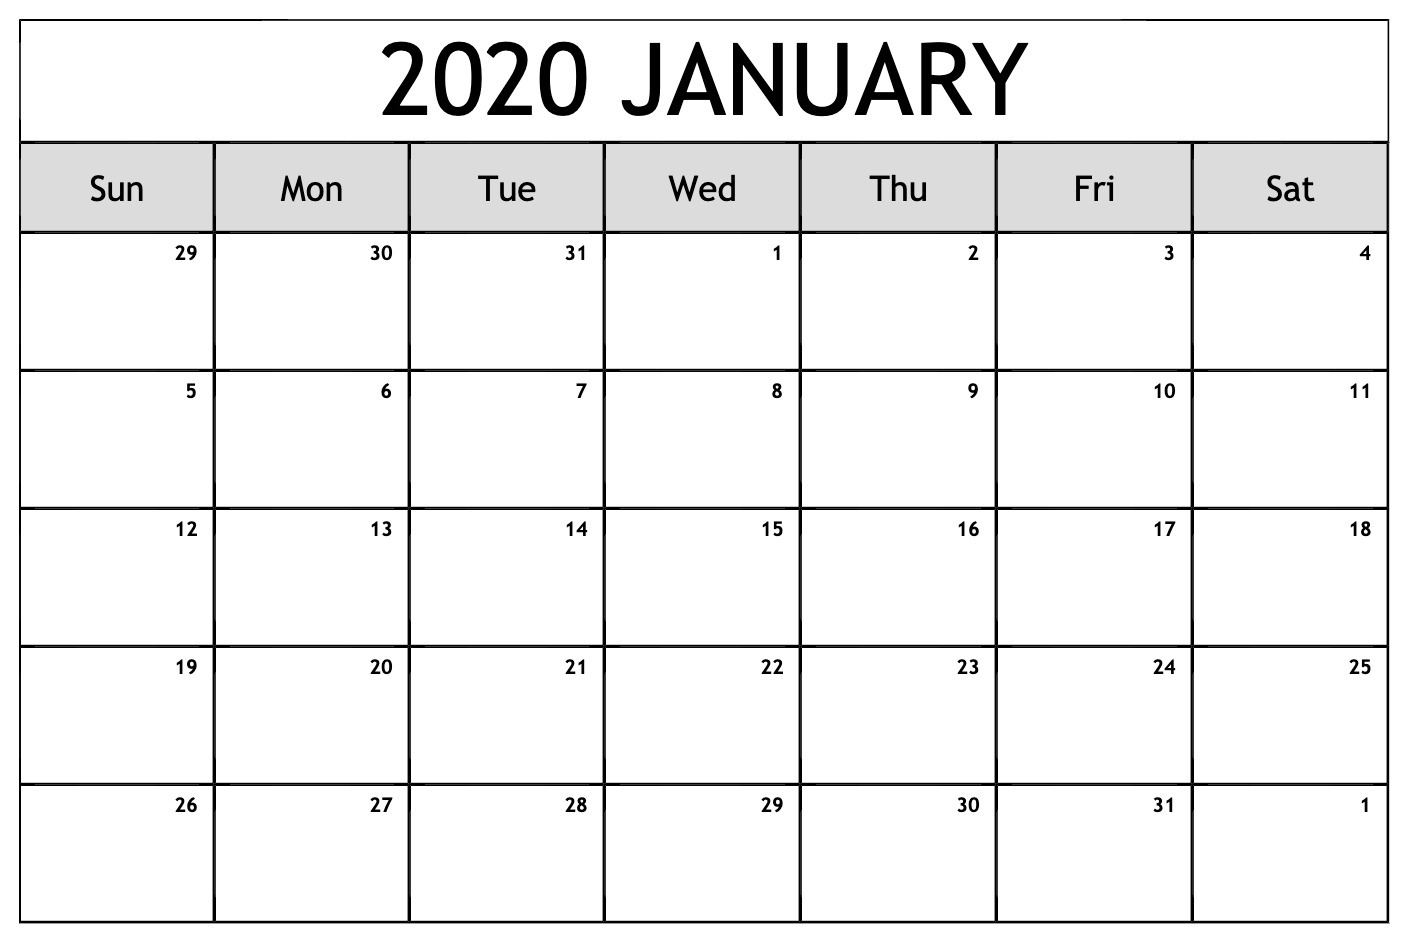 Free Editable January Calendar 2020 Blank Template in Calendar 2020 January